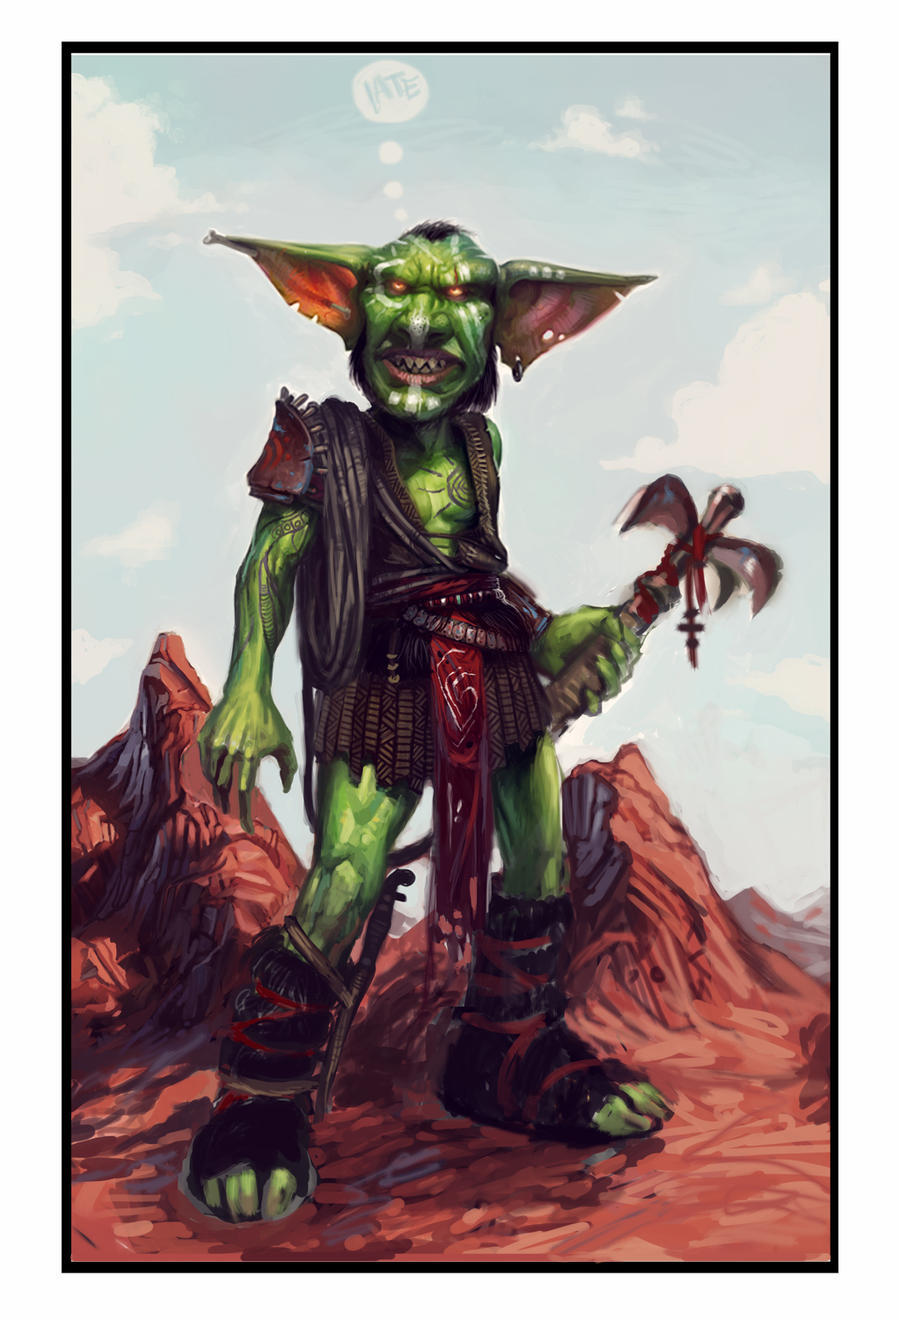 Goblin grappling hook thrower by theLateman